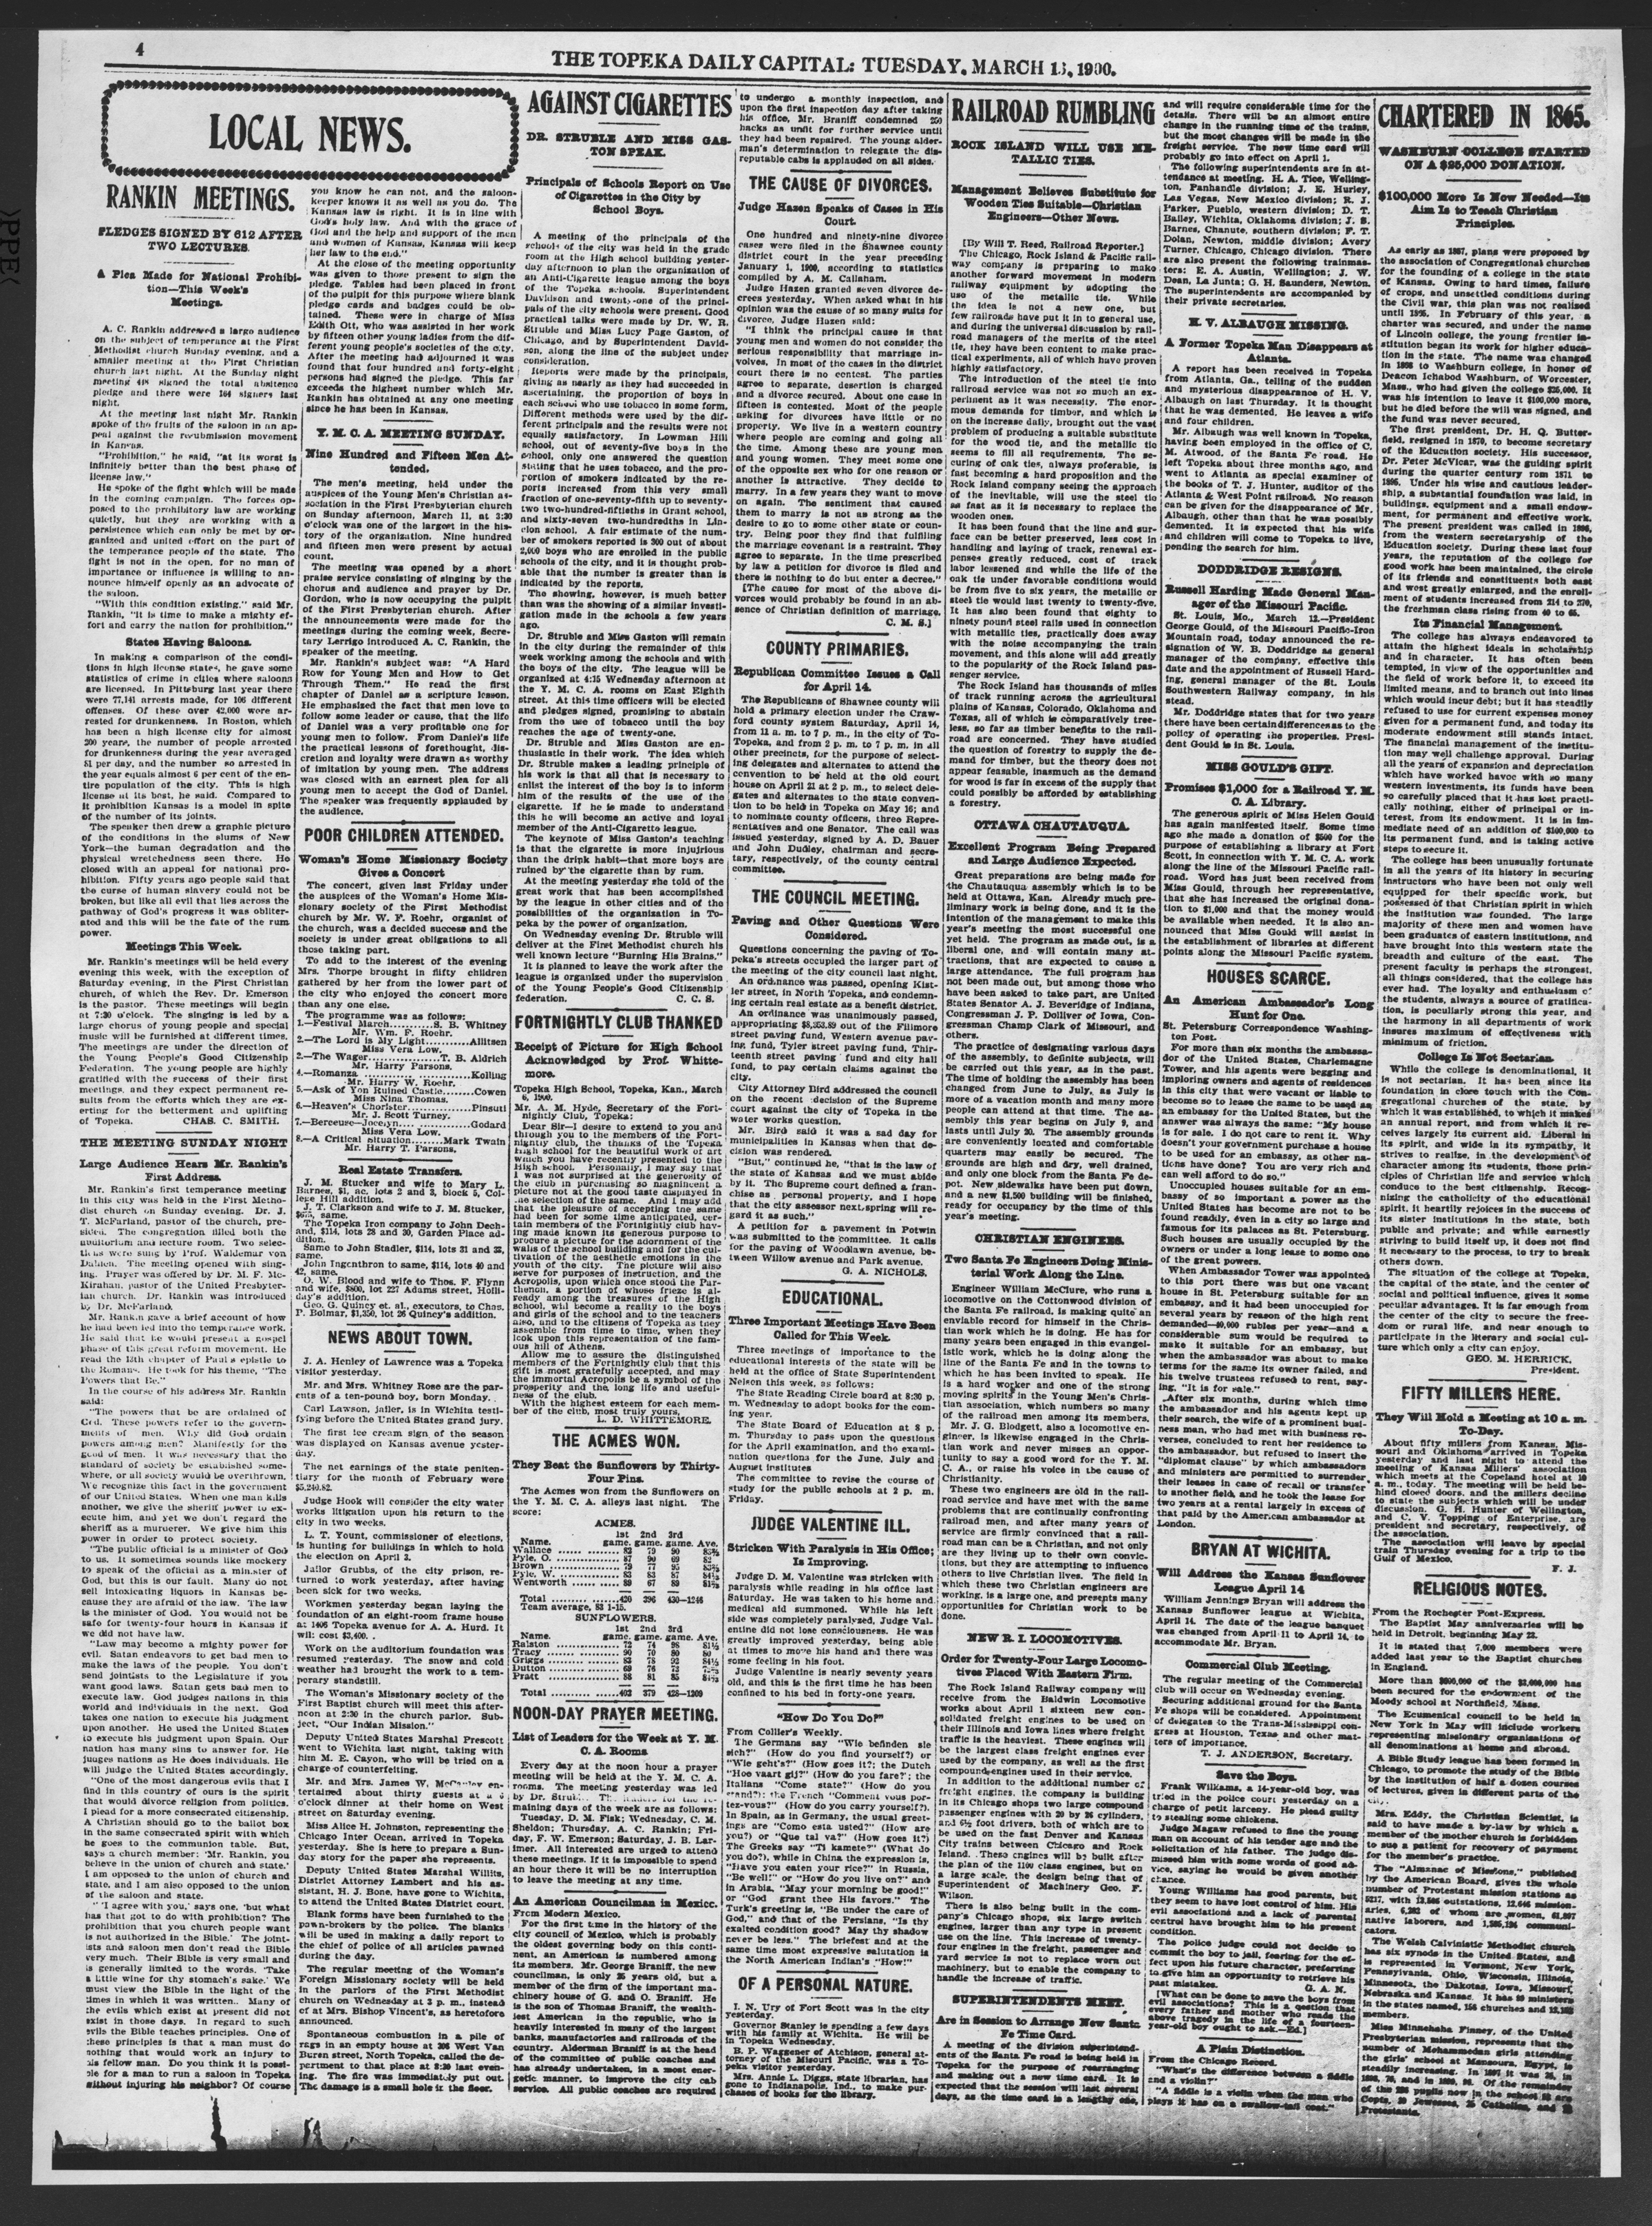 The Topeka daily capital. Sheldon edition - 4, Tuesday, March 13, 1900